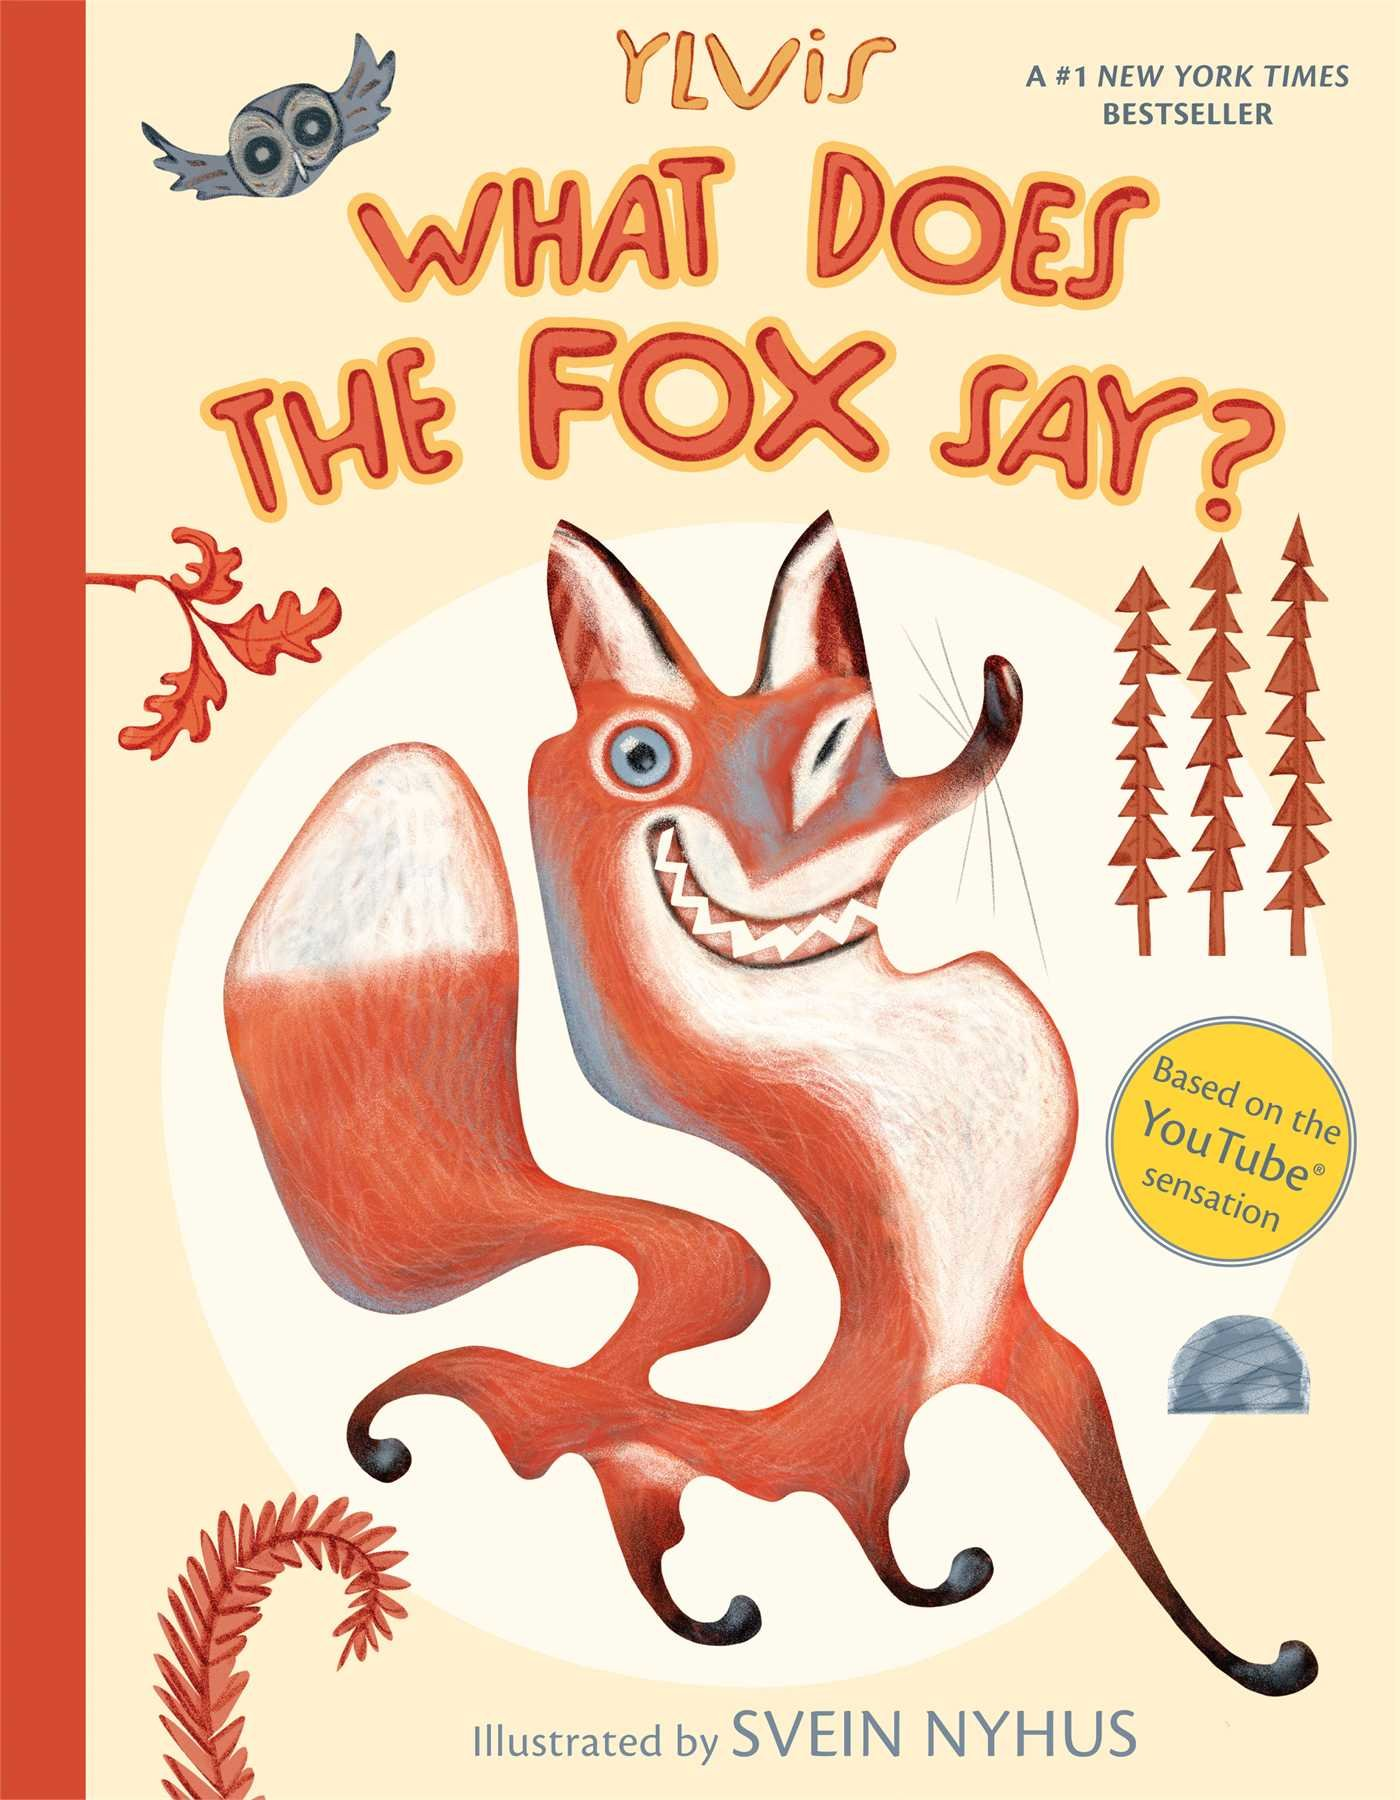 lyrics to what does the fox say